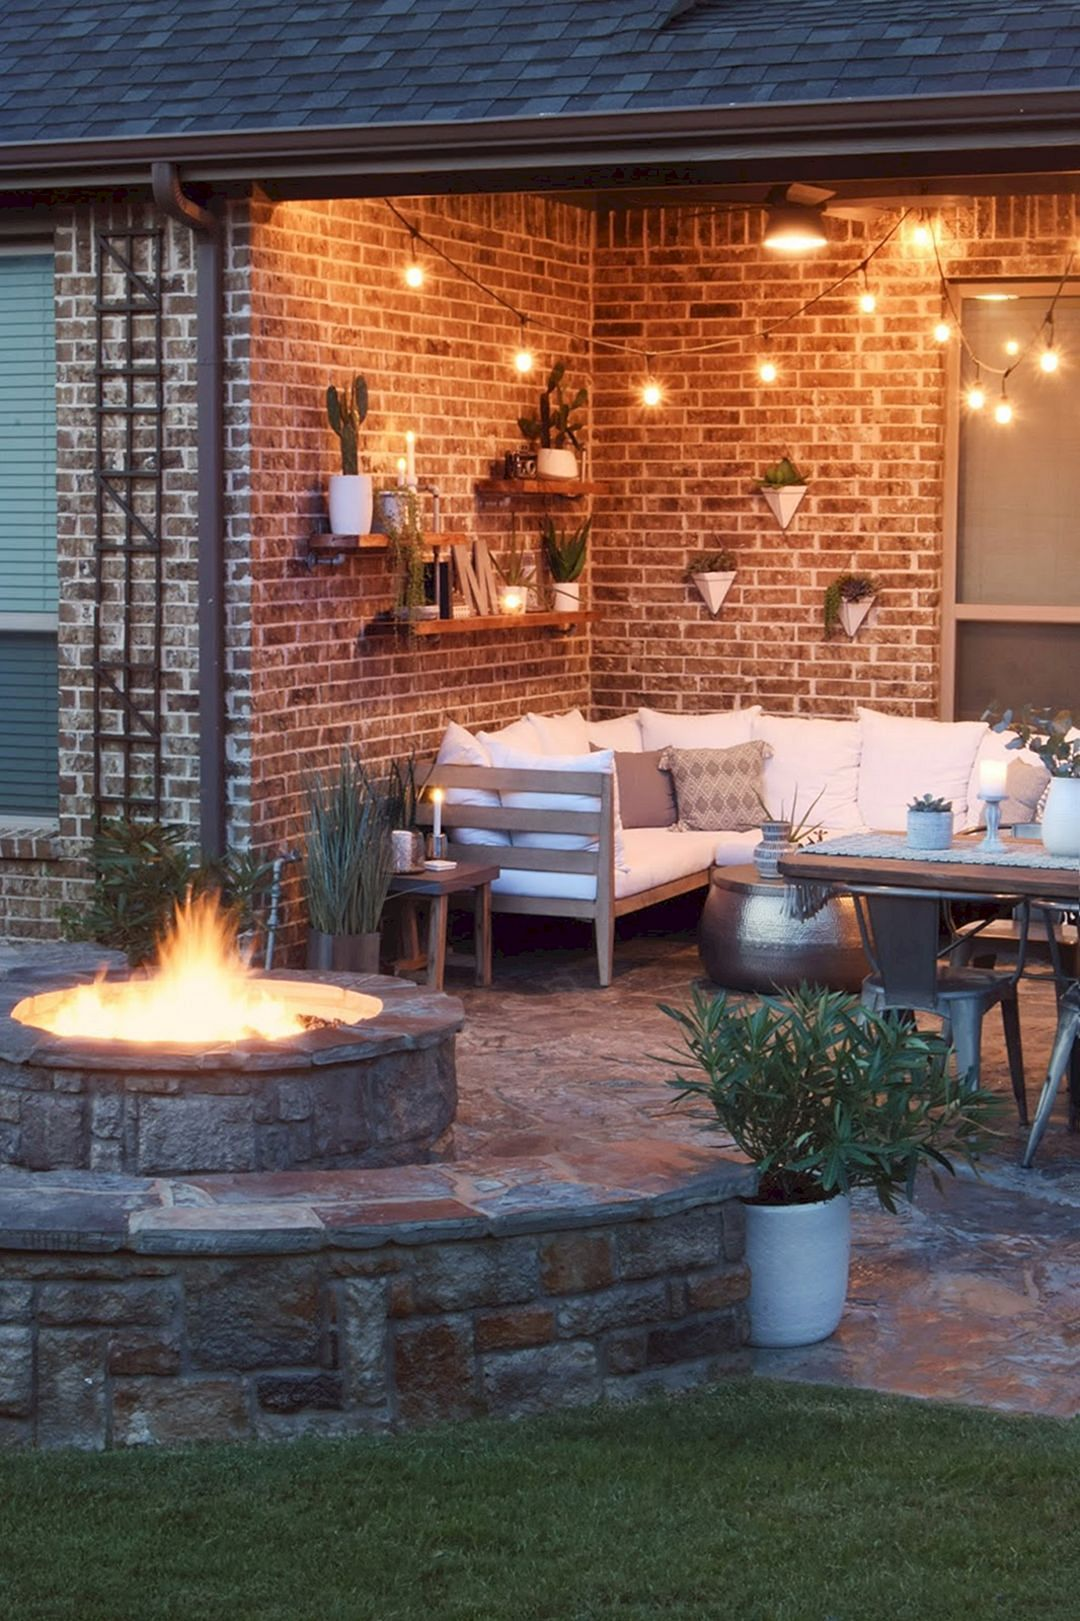 12 Awesome Outdoor Living Space Decoration Ideas On a ... on Outdoor Living Ideas On A Budget id=19287